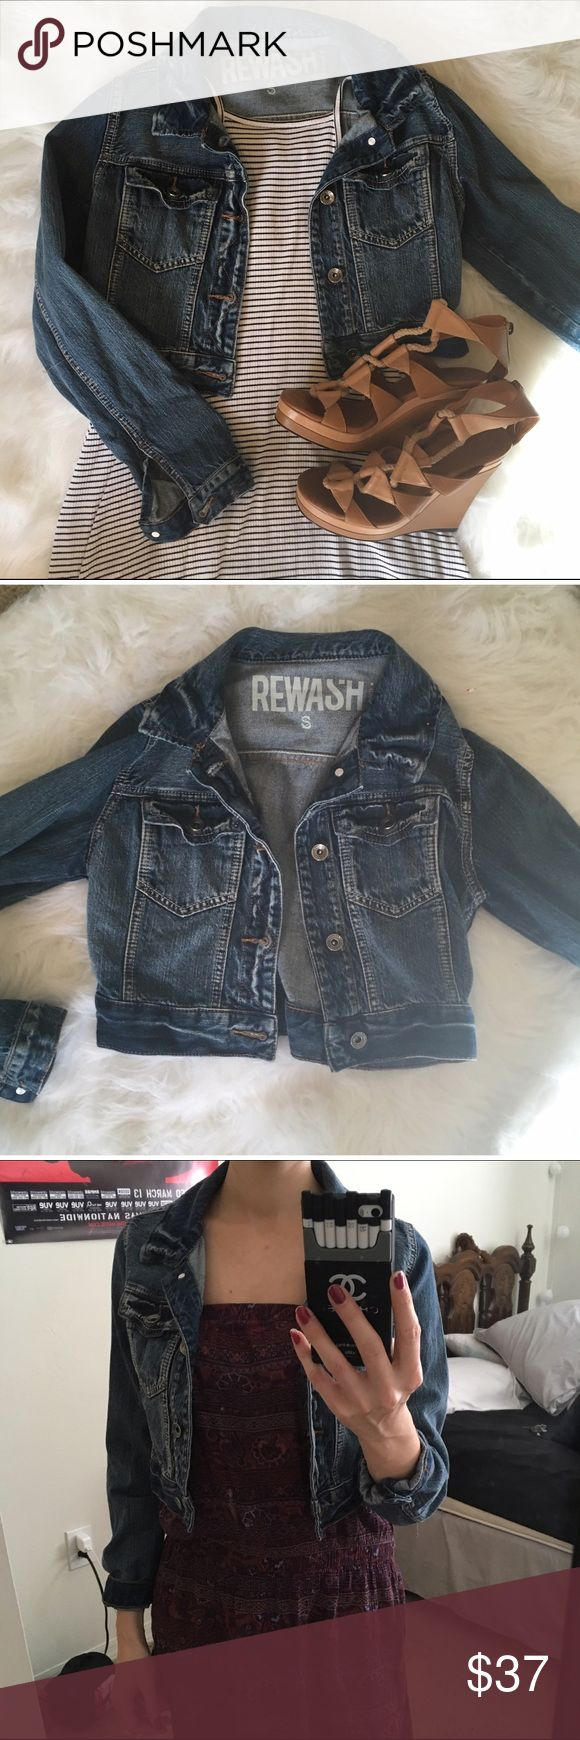 Dark denim jacket Dark denim cropped jacket. Not F21; tagged for exposure. Brand: Rewash. Cute & comfortable! Forever 21 Jackets & Coats Jean Jackets